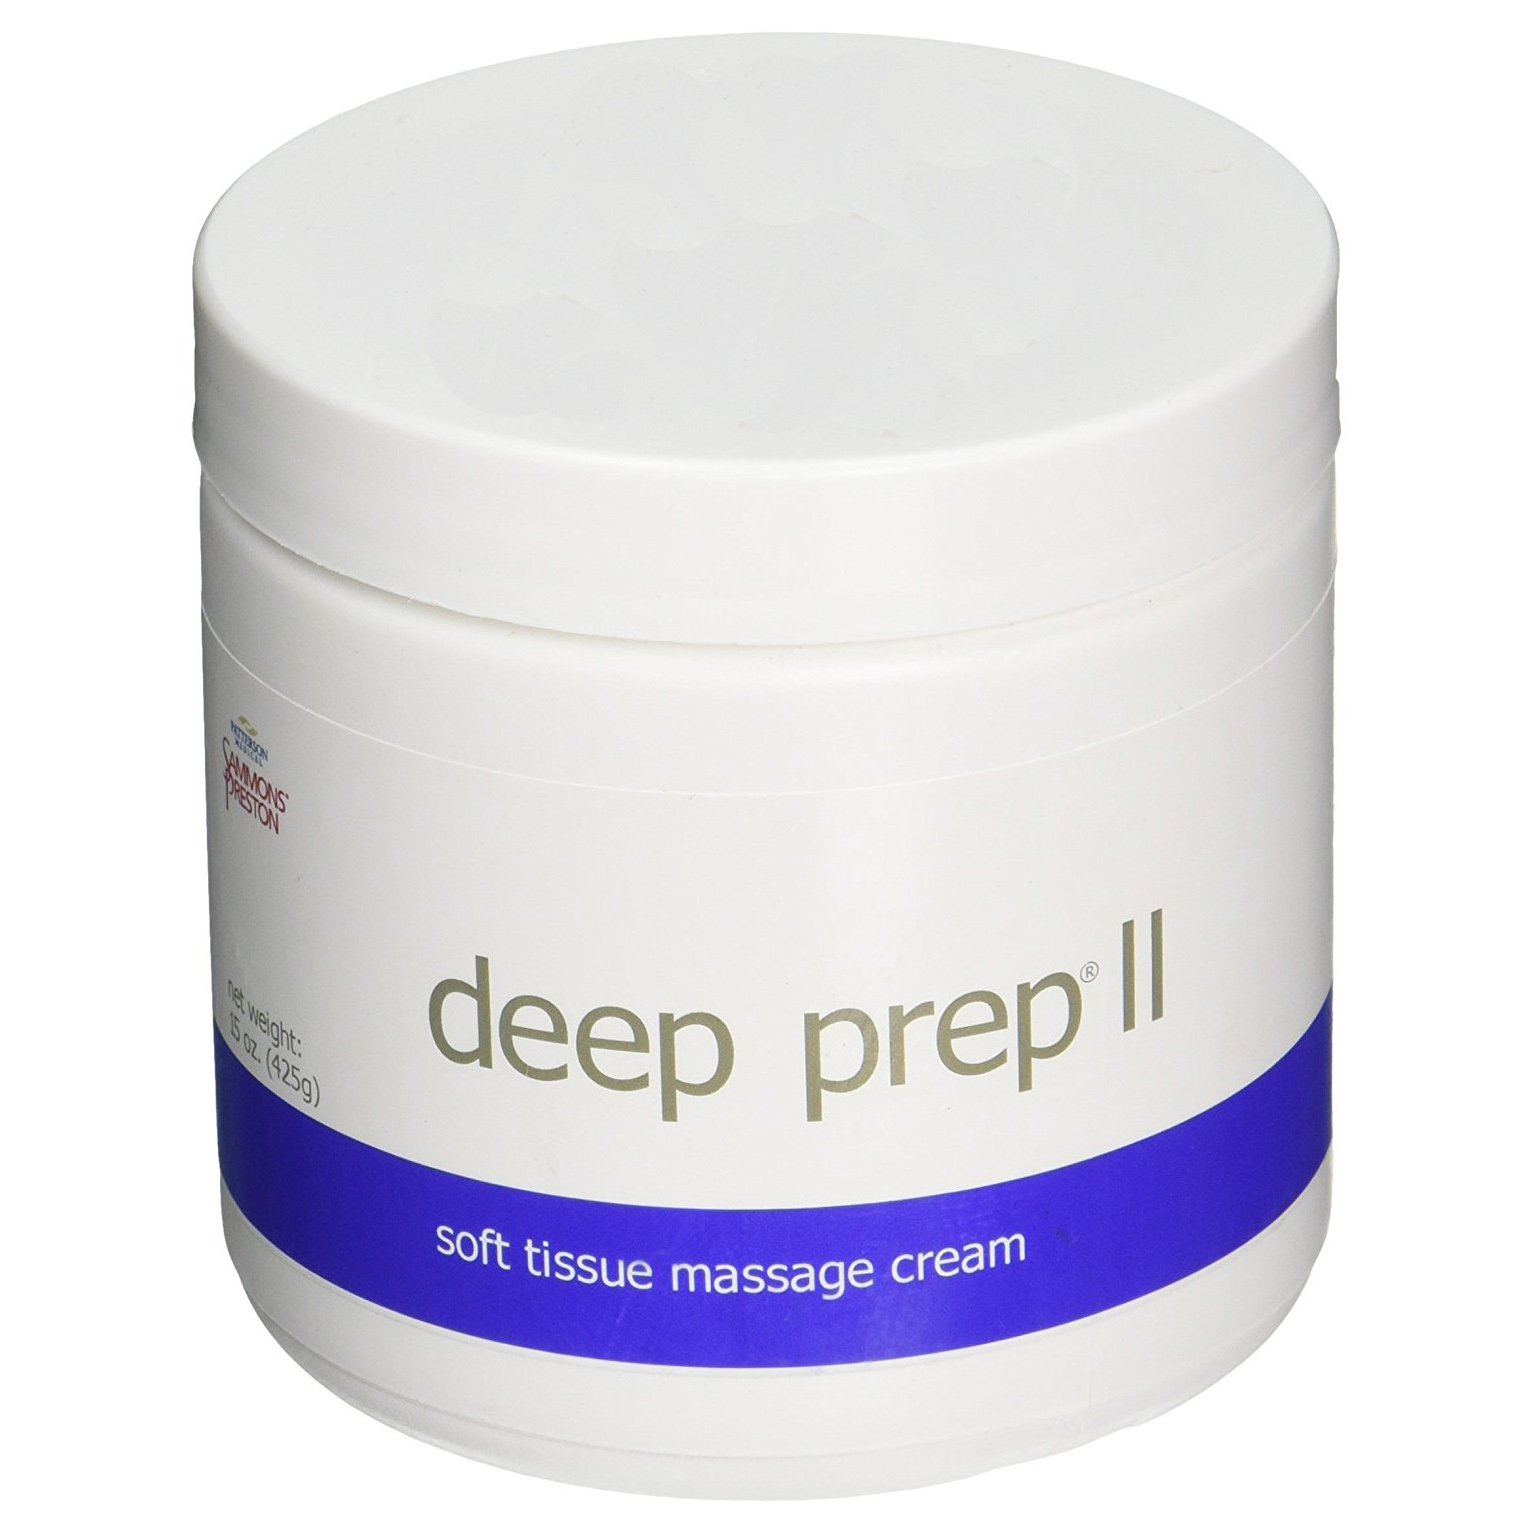 Rolyan Deep Prep II Cream, Professional Massage Cream with Coconut Oil, Beeswax-Free, Long Lasting Creme with Waxy Feel for Relaxing Full Body Massage and Pain Relief, 15 Ounce Jar